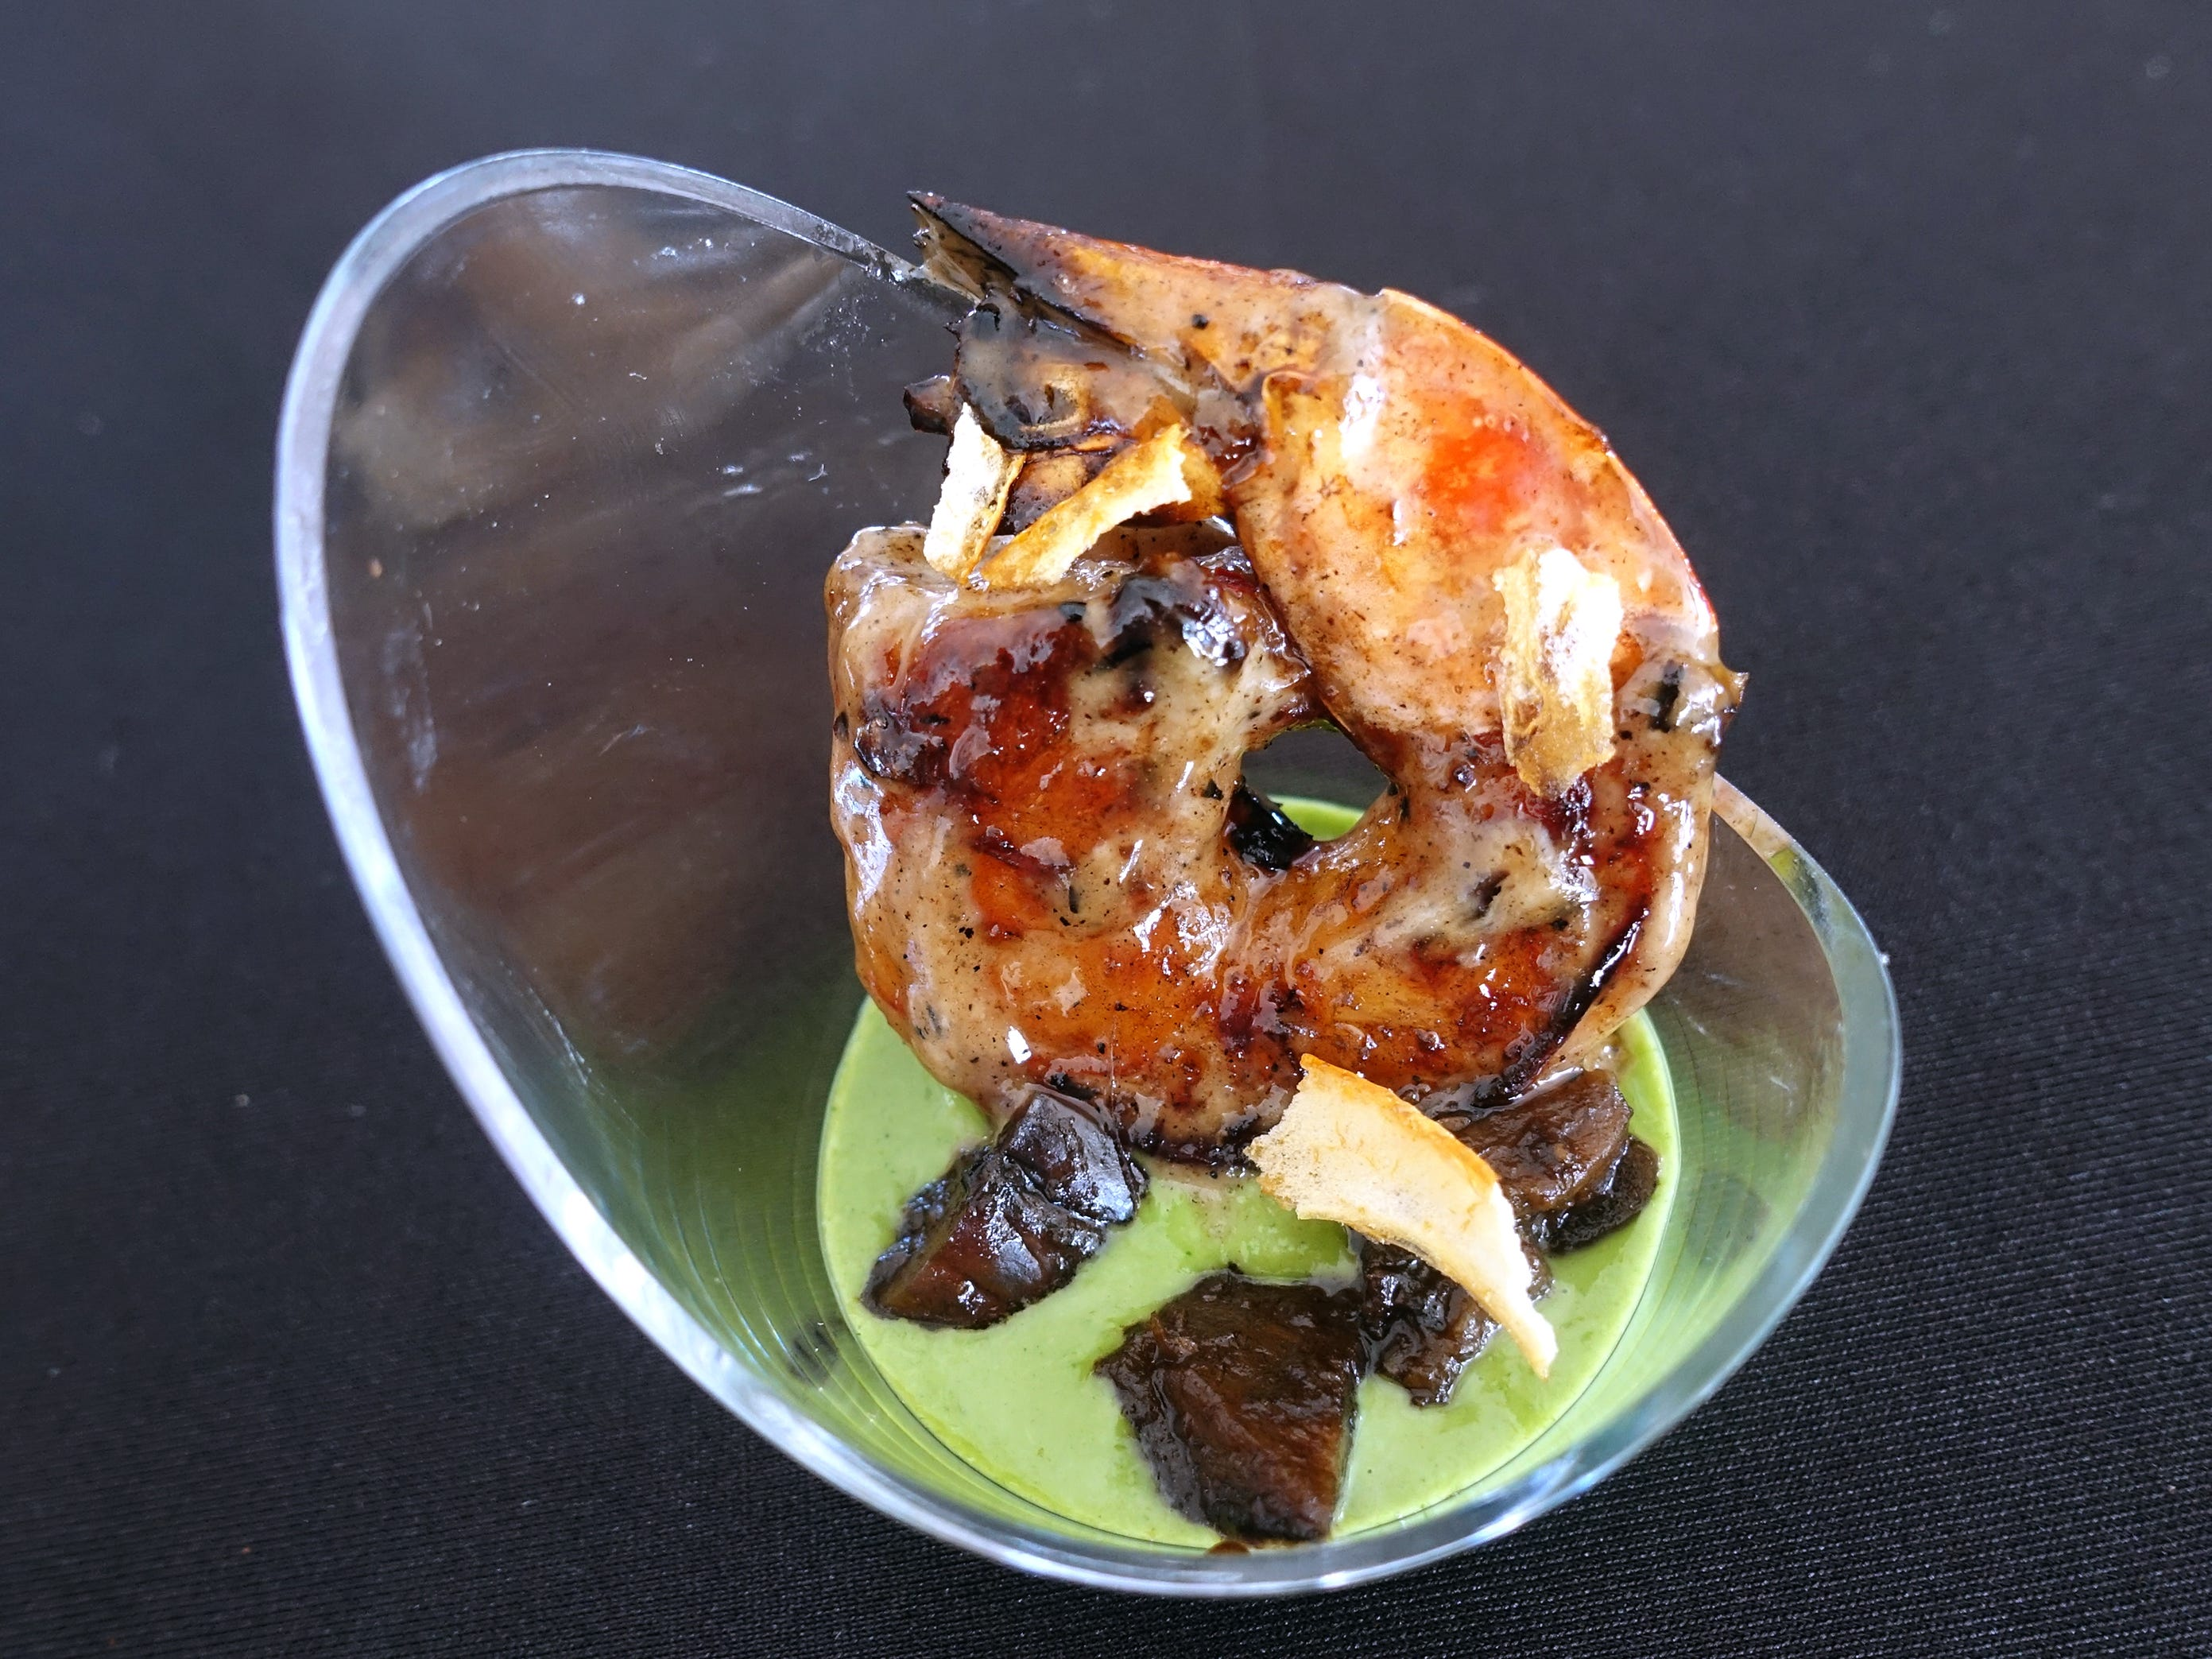 Miso-marinated shrimp with basil aioli, eggplant, black garlic ponzu and shattered citrus from Mowry & Cotton at azcentral Wine & Food Experience 2018 at WestWorld of Scottsdale, Saturday, Nov. 3, 2018.